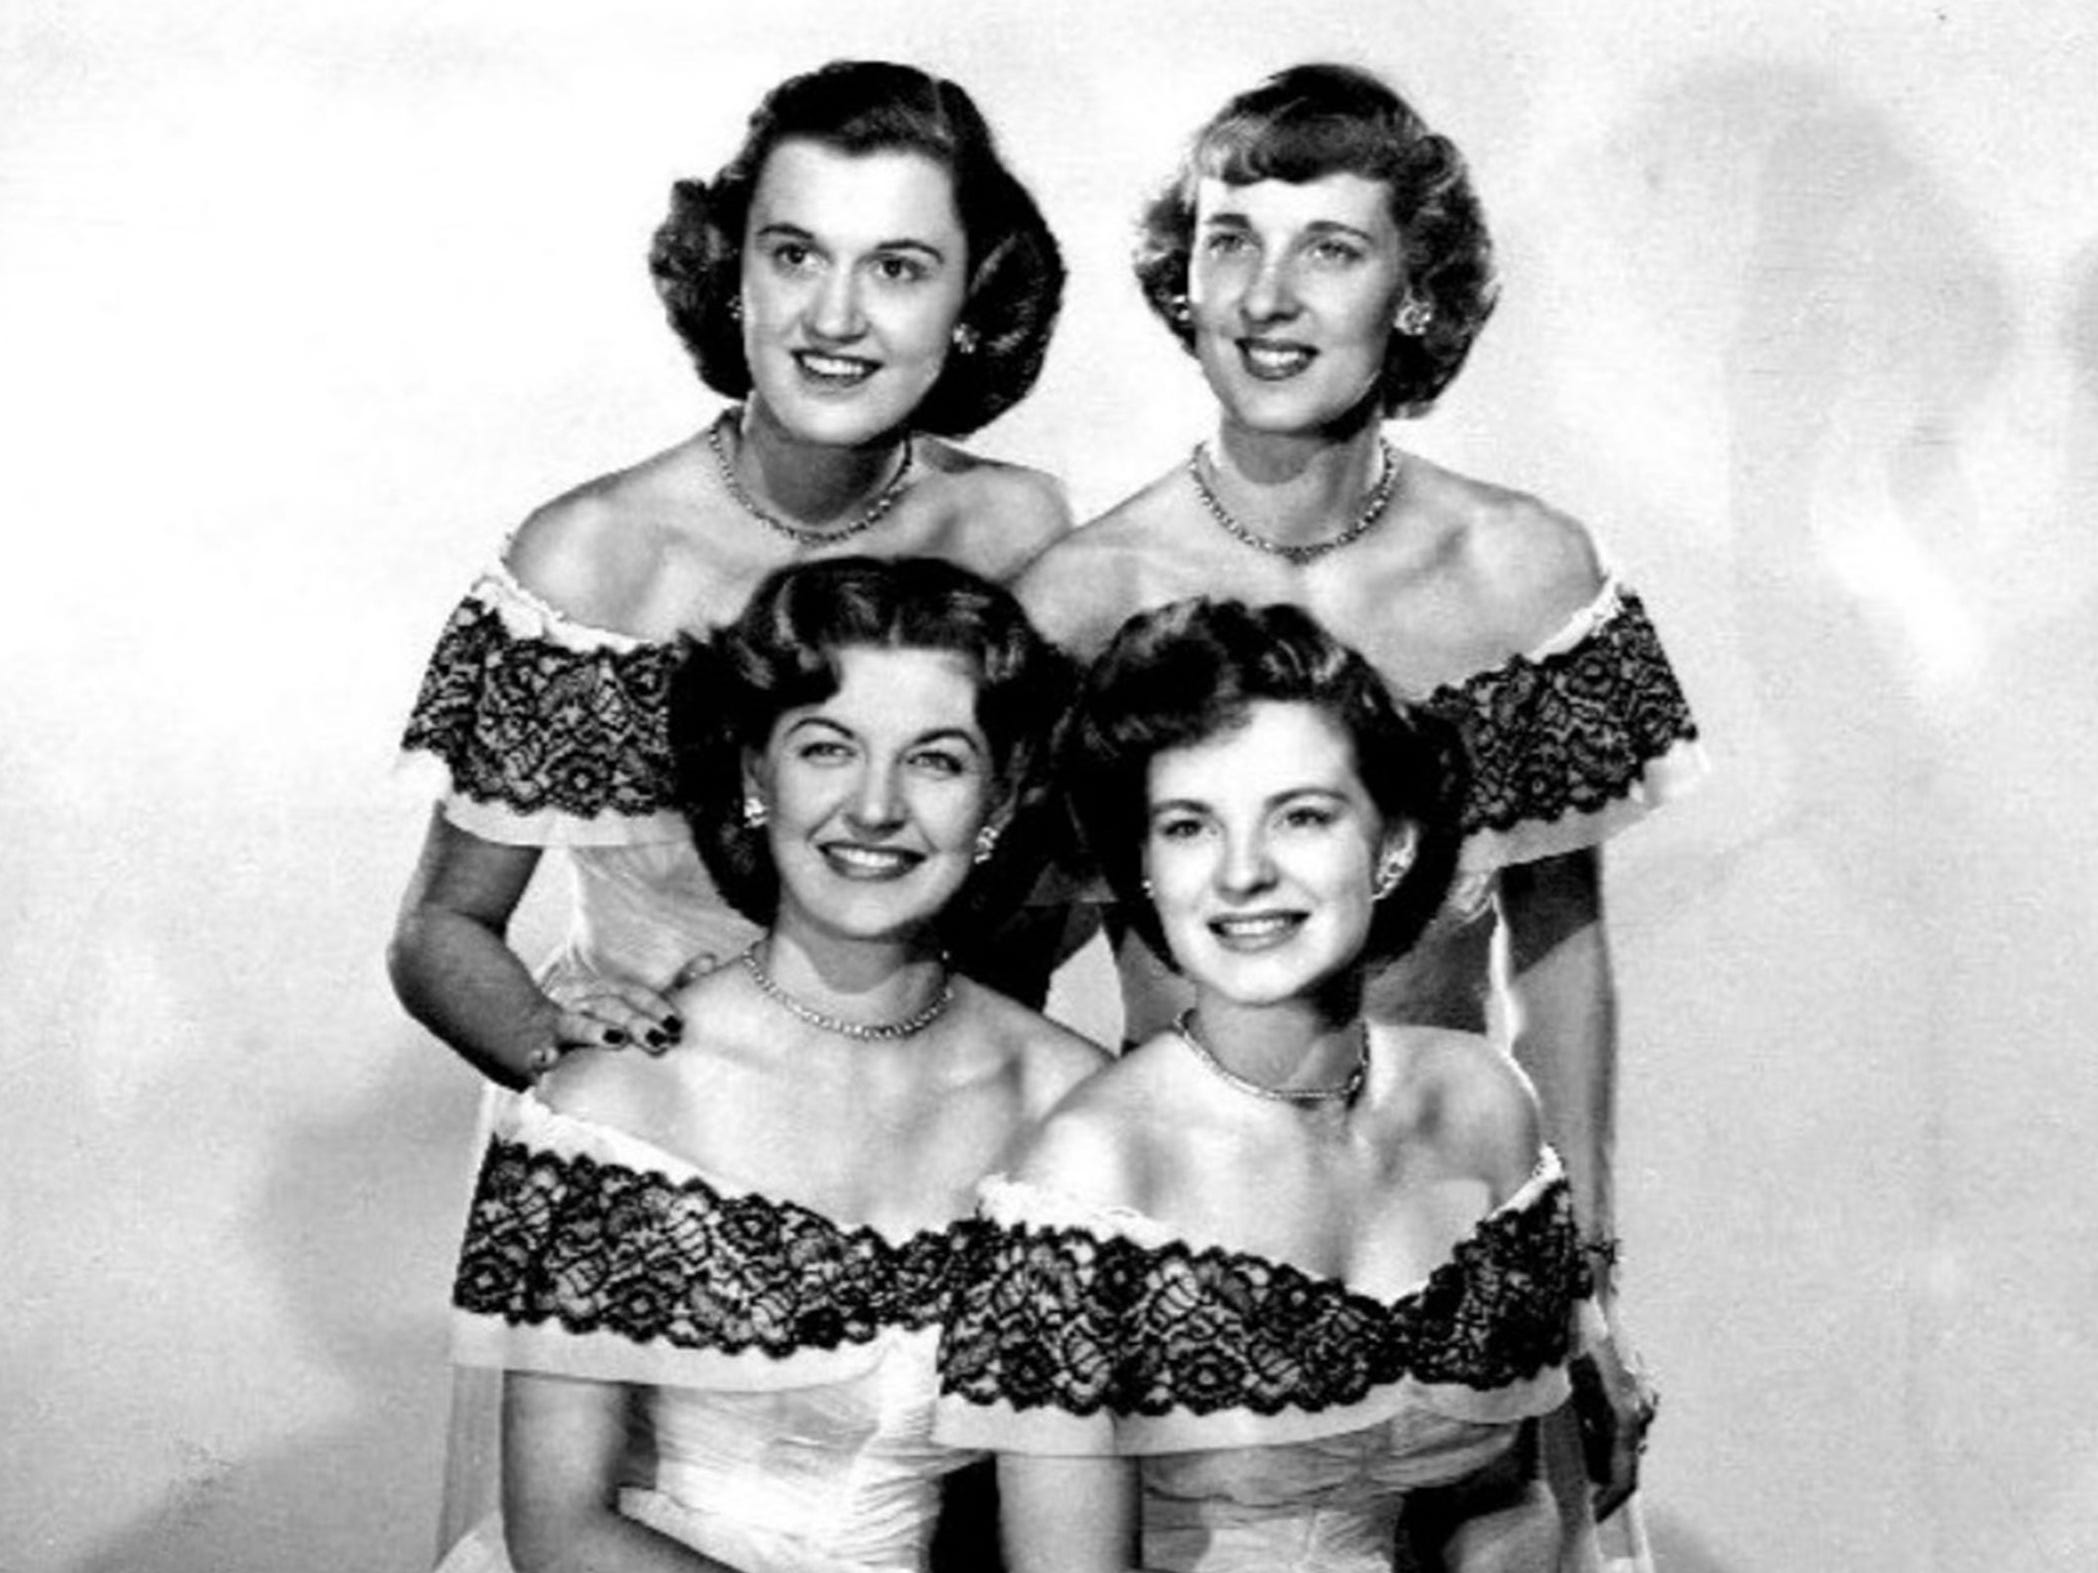 This is a handout promotional photo of the Chordettes from the 1950s.